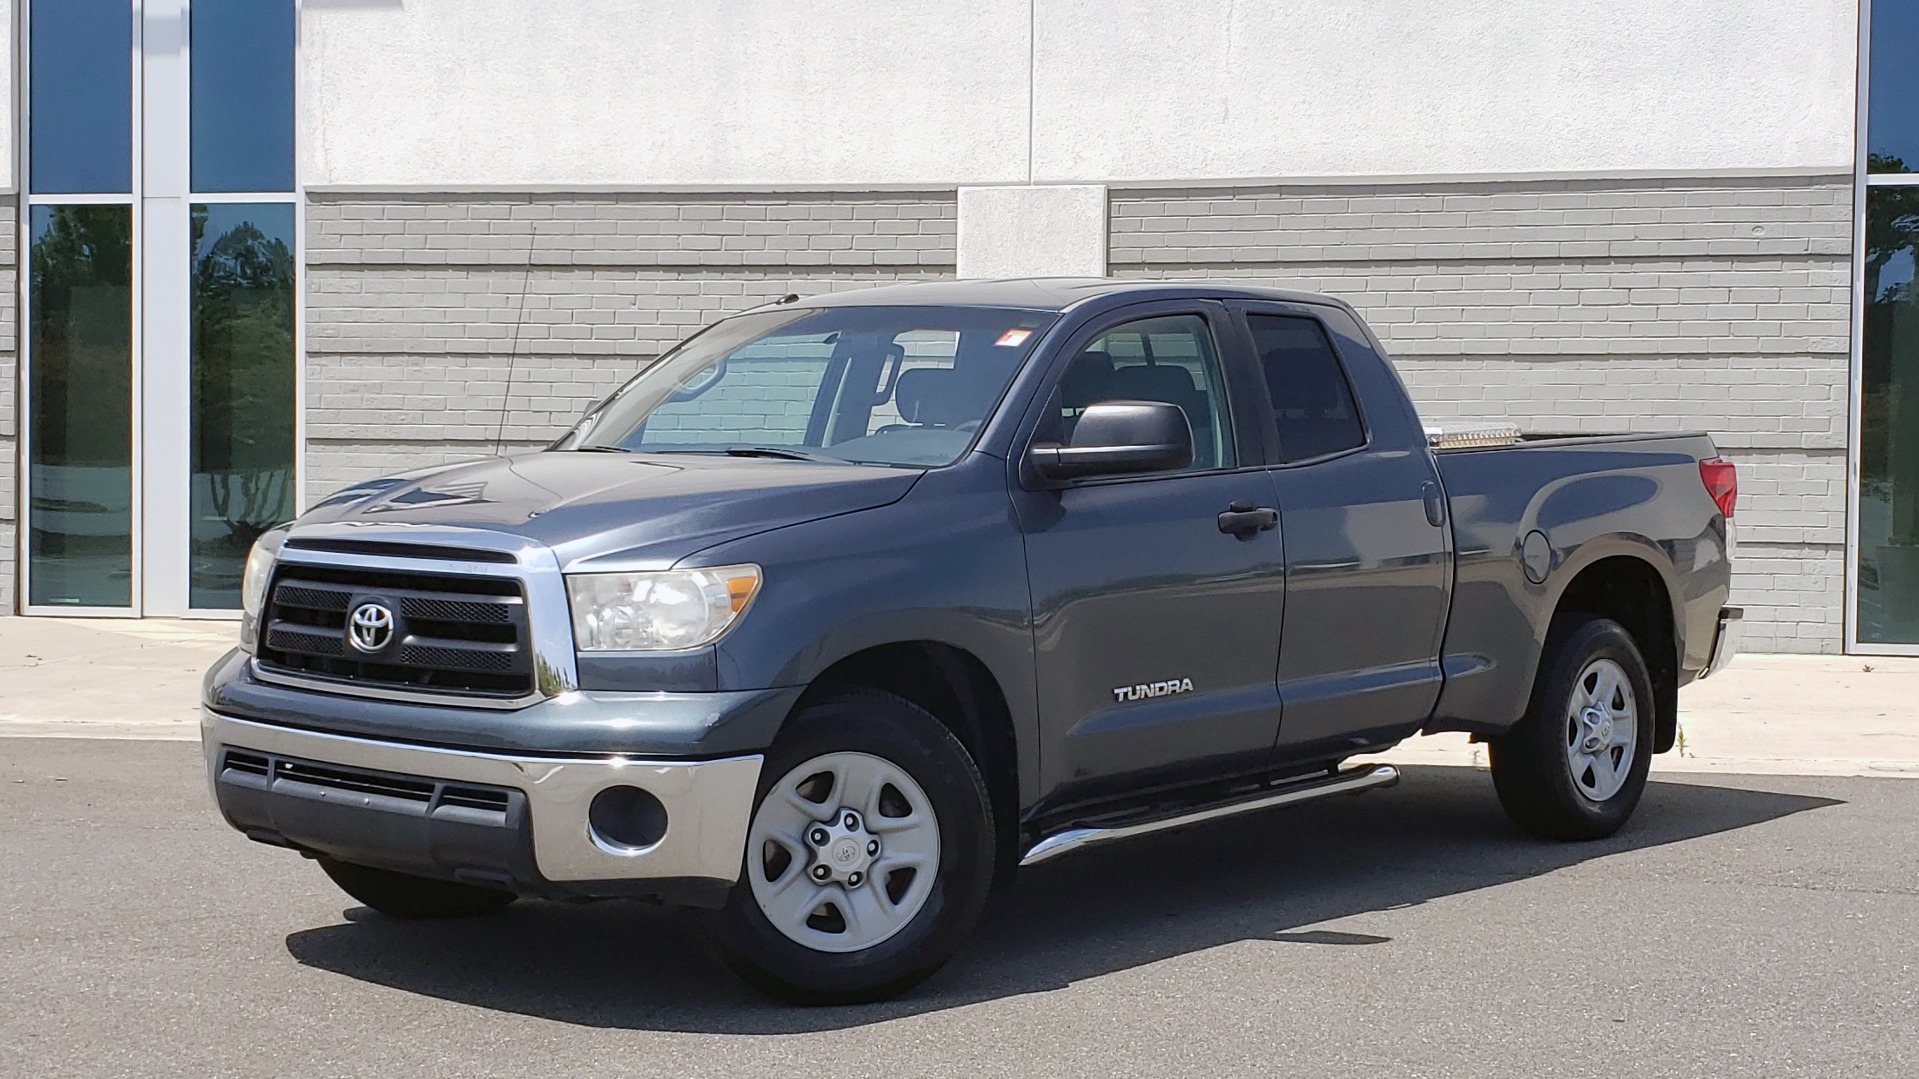 Used 2010 Toyota TUNDRA DOUBLECAB 4X4 / 4.6L V8 / 6-SPD AUTO / TOW PKG / 18IN WHEELS for sale $17,995 at Formula Imports in Charlotte NC 28227 1